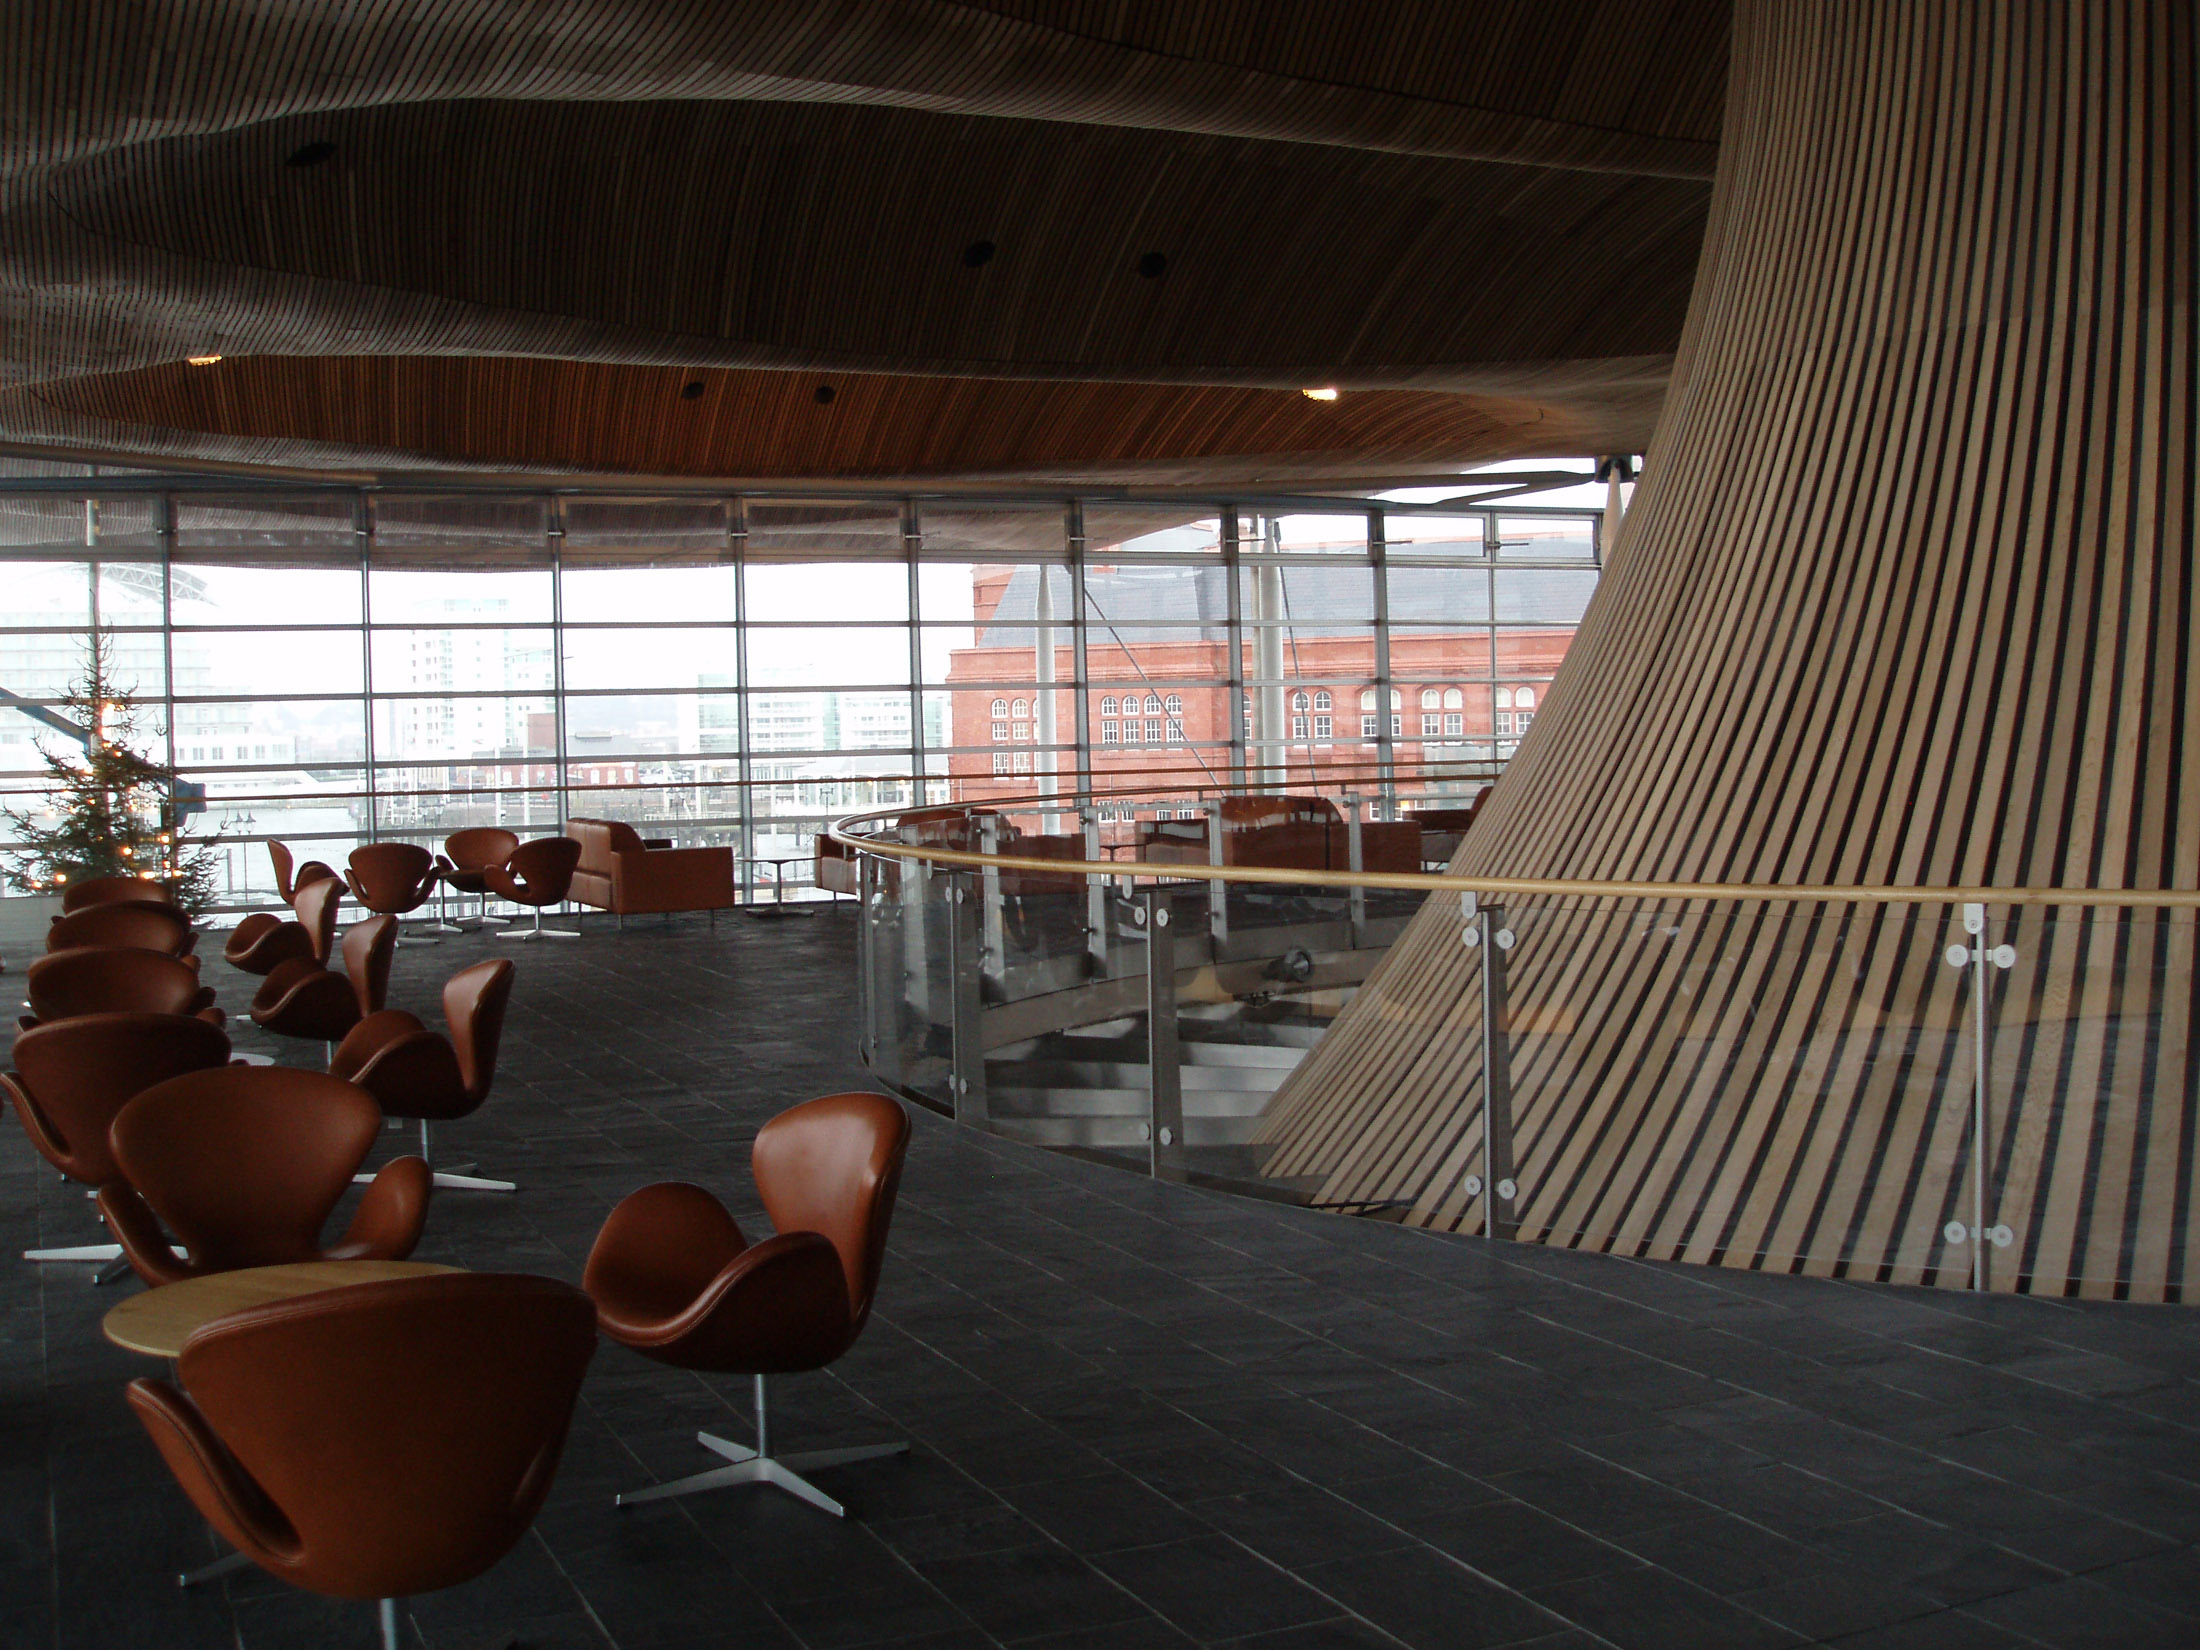 Interior view of seating and tables in the Senedd, or national Assembley Building in Cardiff, Wales